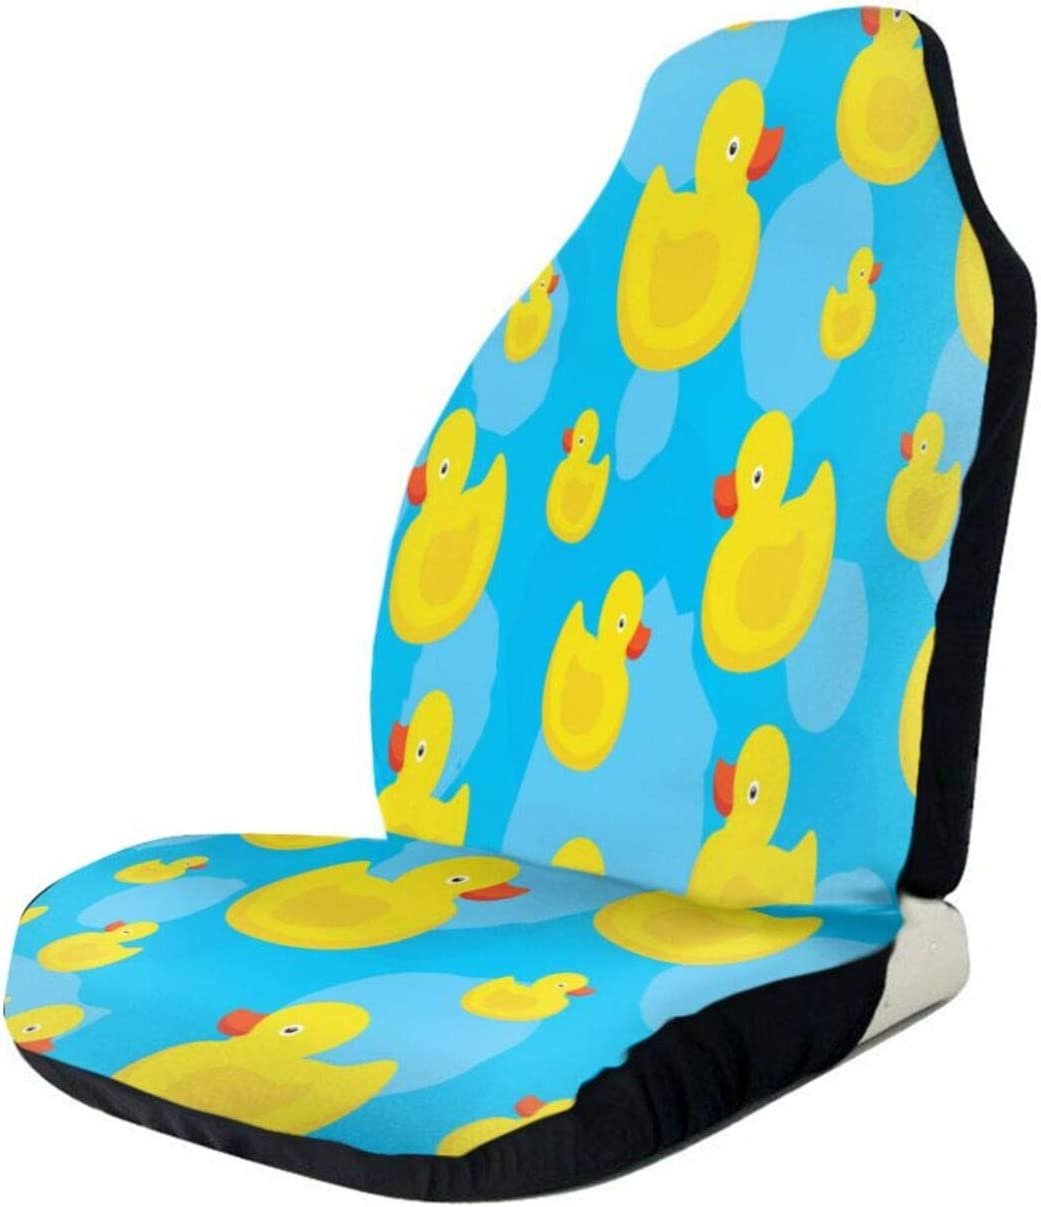 Cute Yellow Ducks Front Seat Auto Premium Large discharge sale Cover Seats Year-end gift Protectors